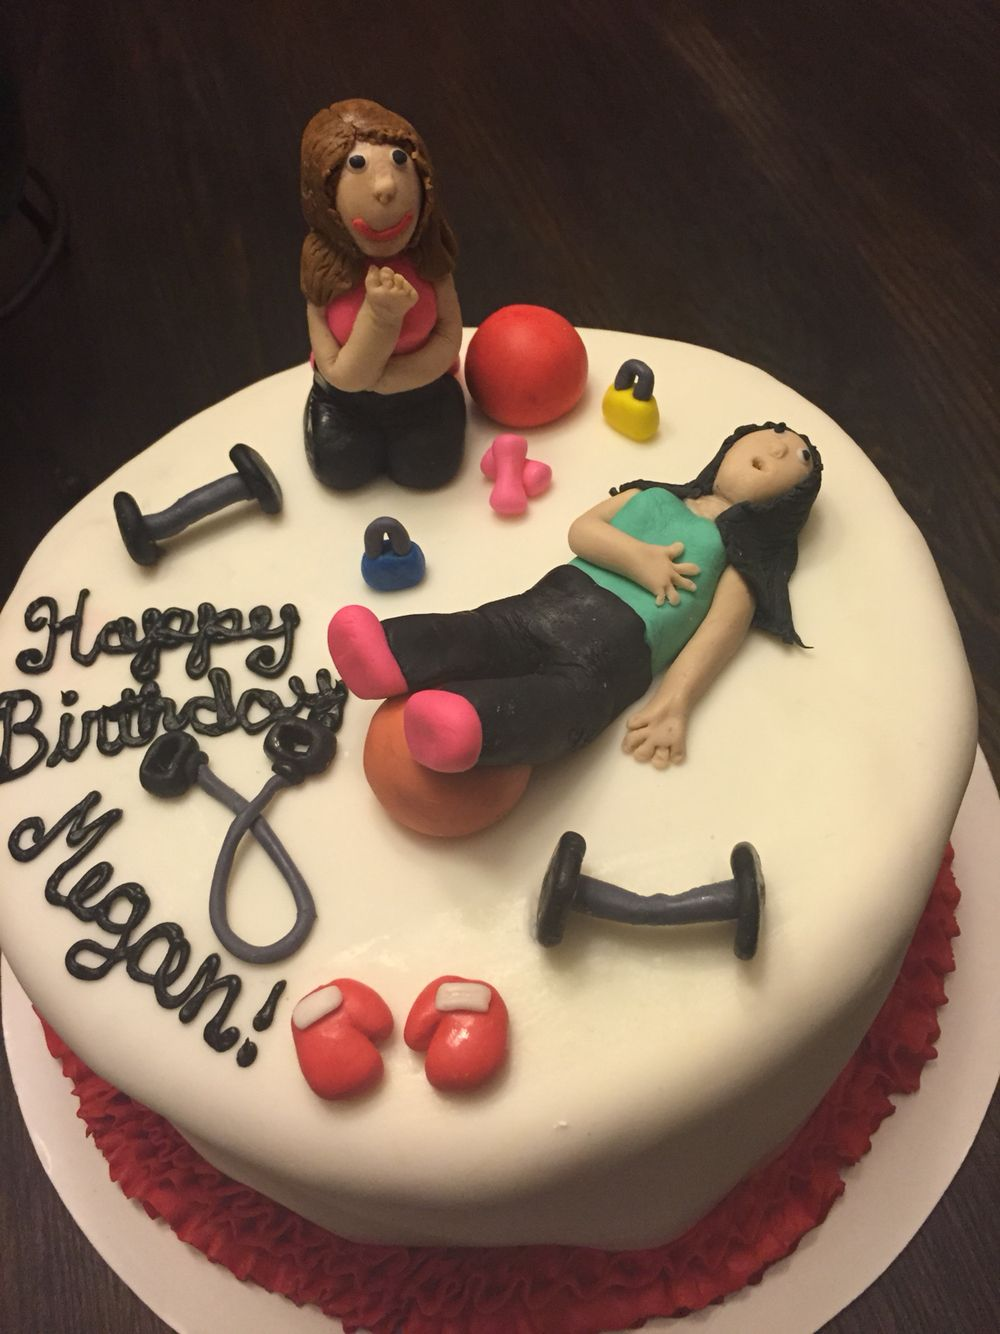 Personal Trainer Cake Cakes Pinterest Cake Birthday Cake And